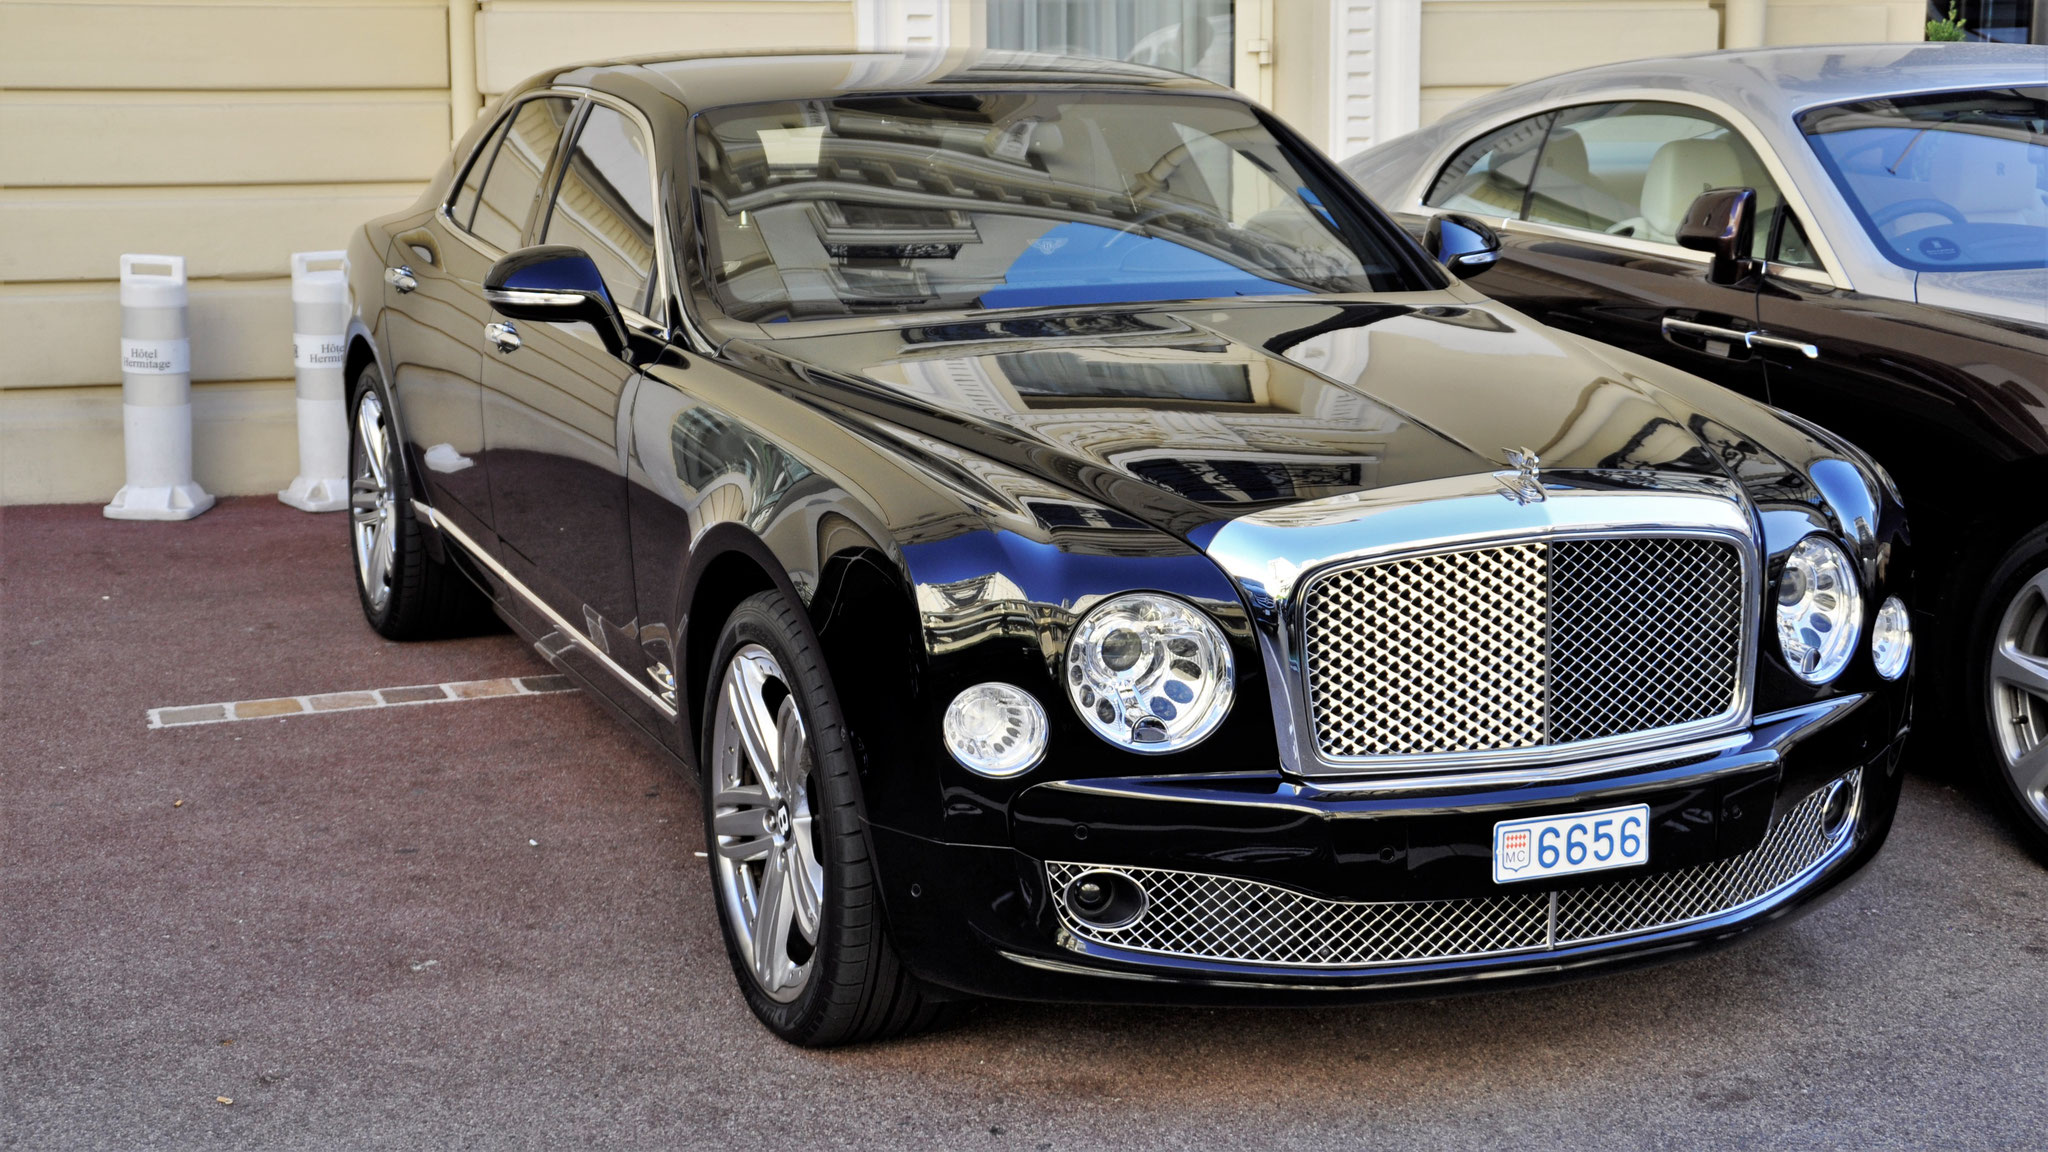 Bentley Mulsanne - 6656 (MC)